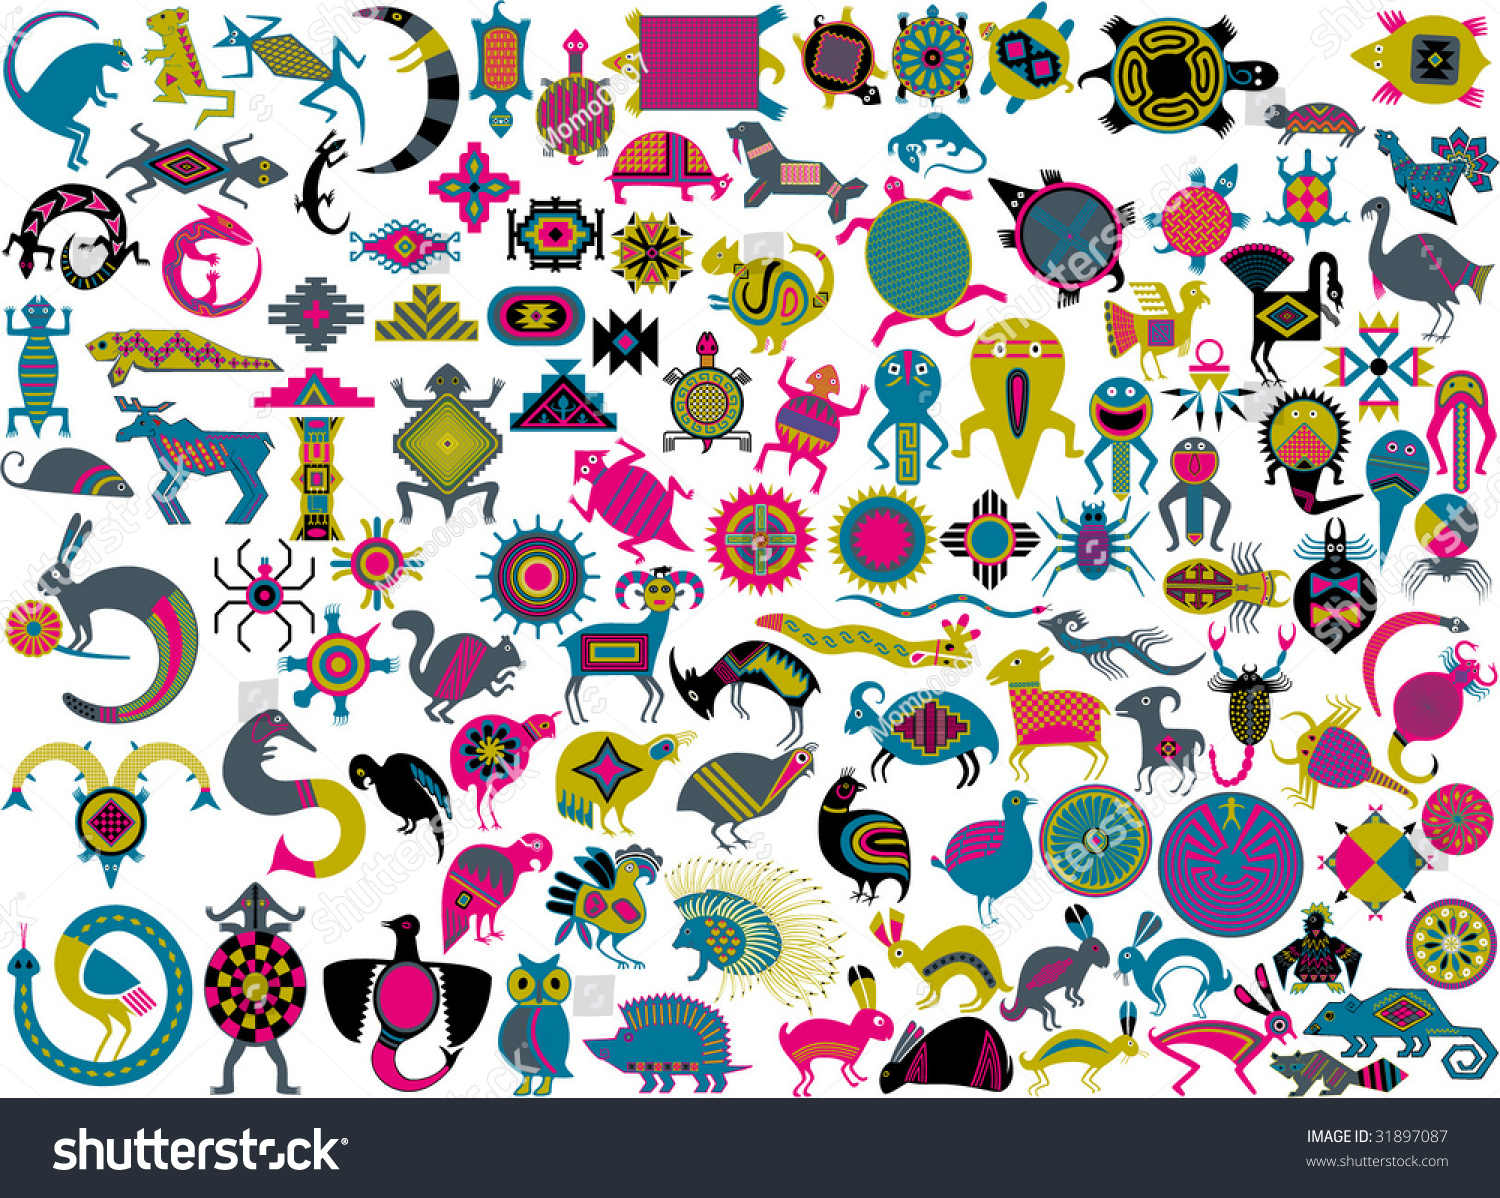 Clipart Images Stock Photos amp Vectors  Shutterstock